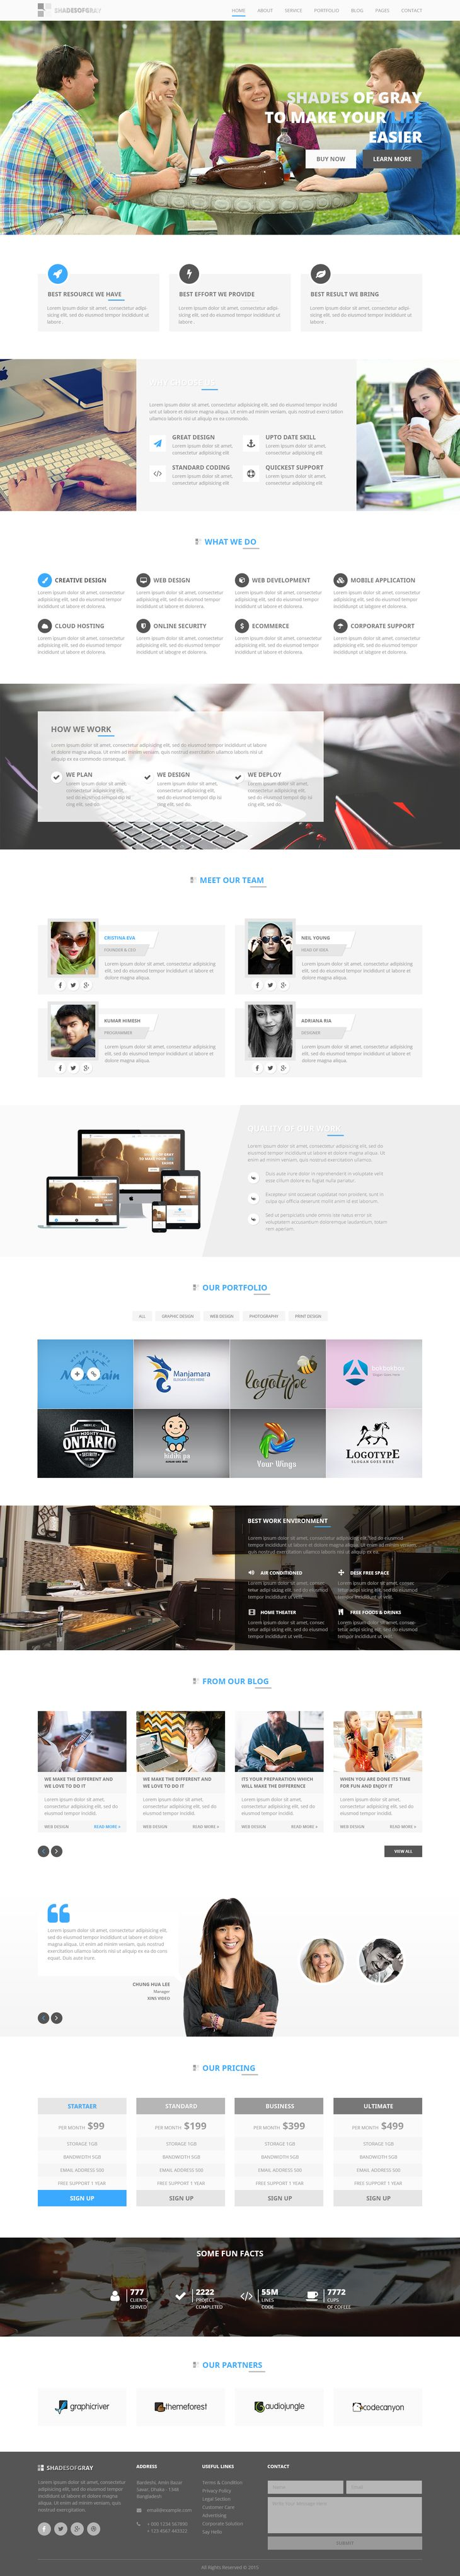 Best 25+ Free web page templates ideas on Pinterest | Web page ...